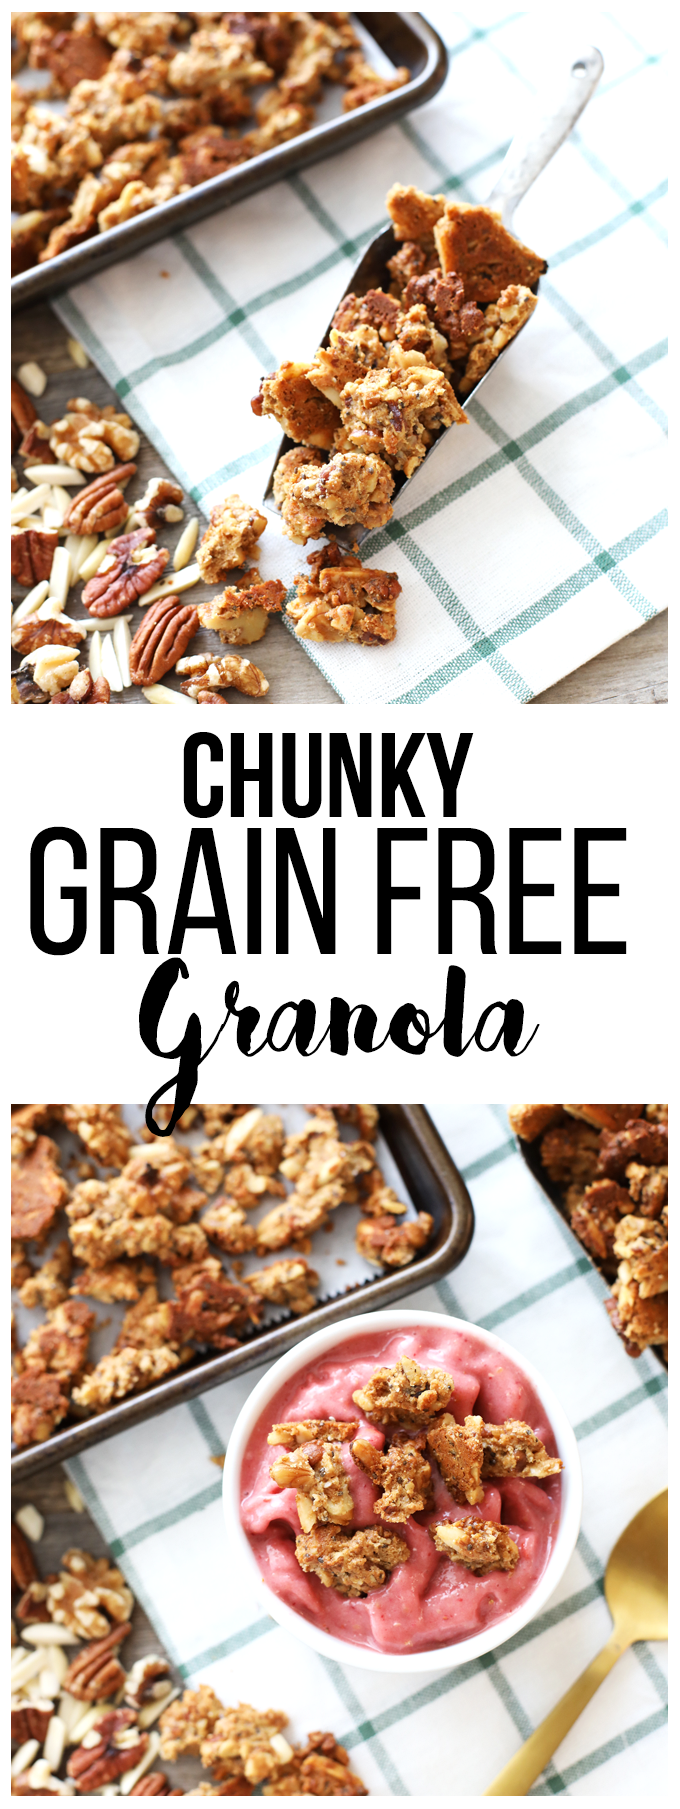 This Chunky Grain Free Granola is perfect to top a smoothie bowl or eat by the handful!